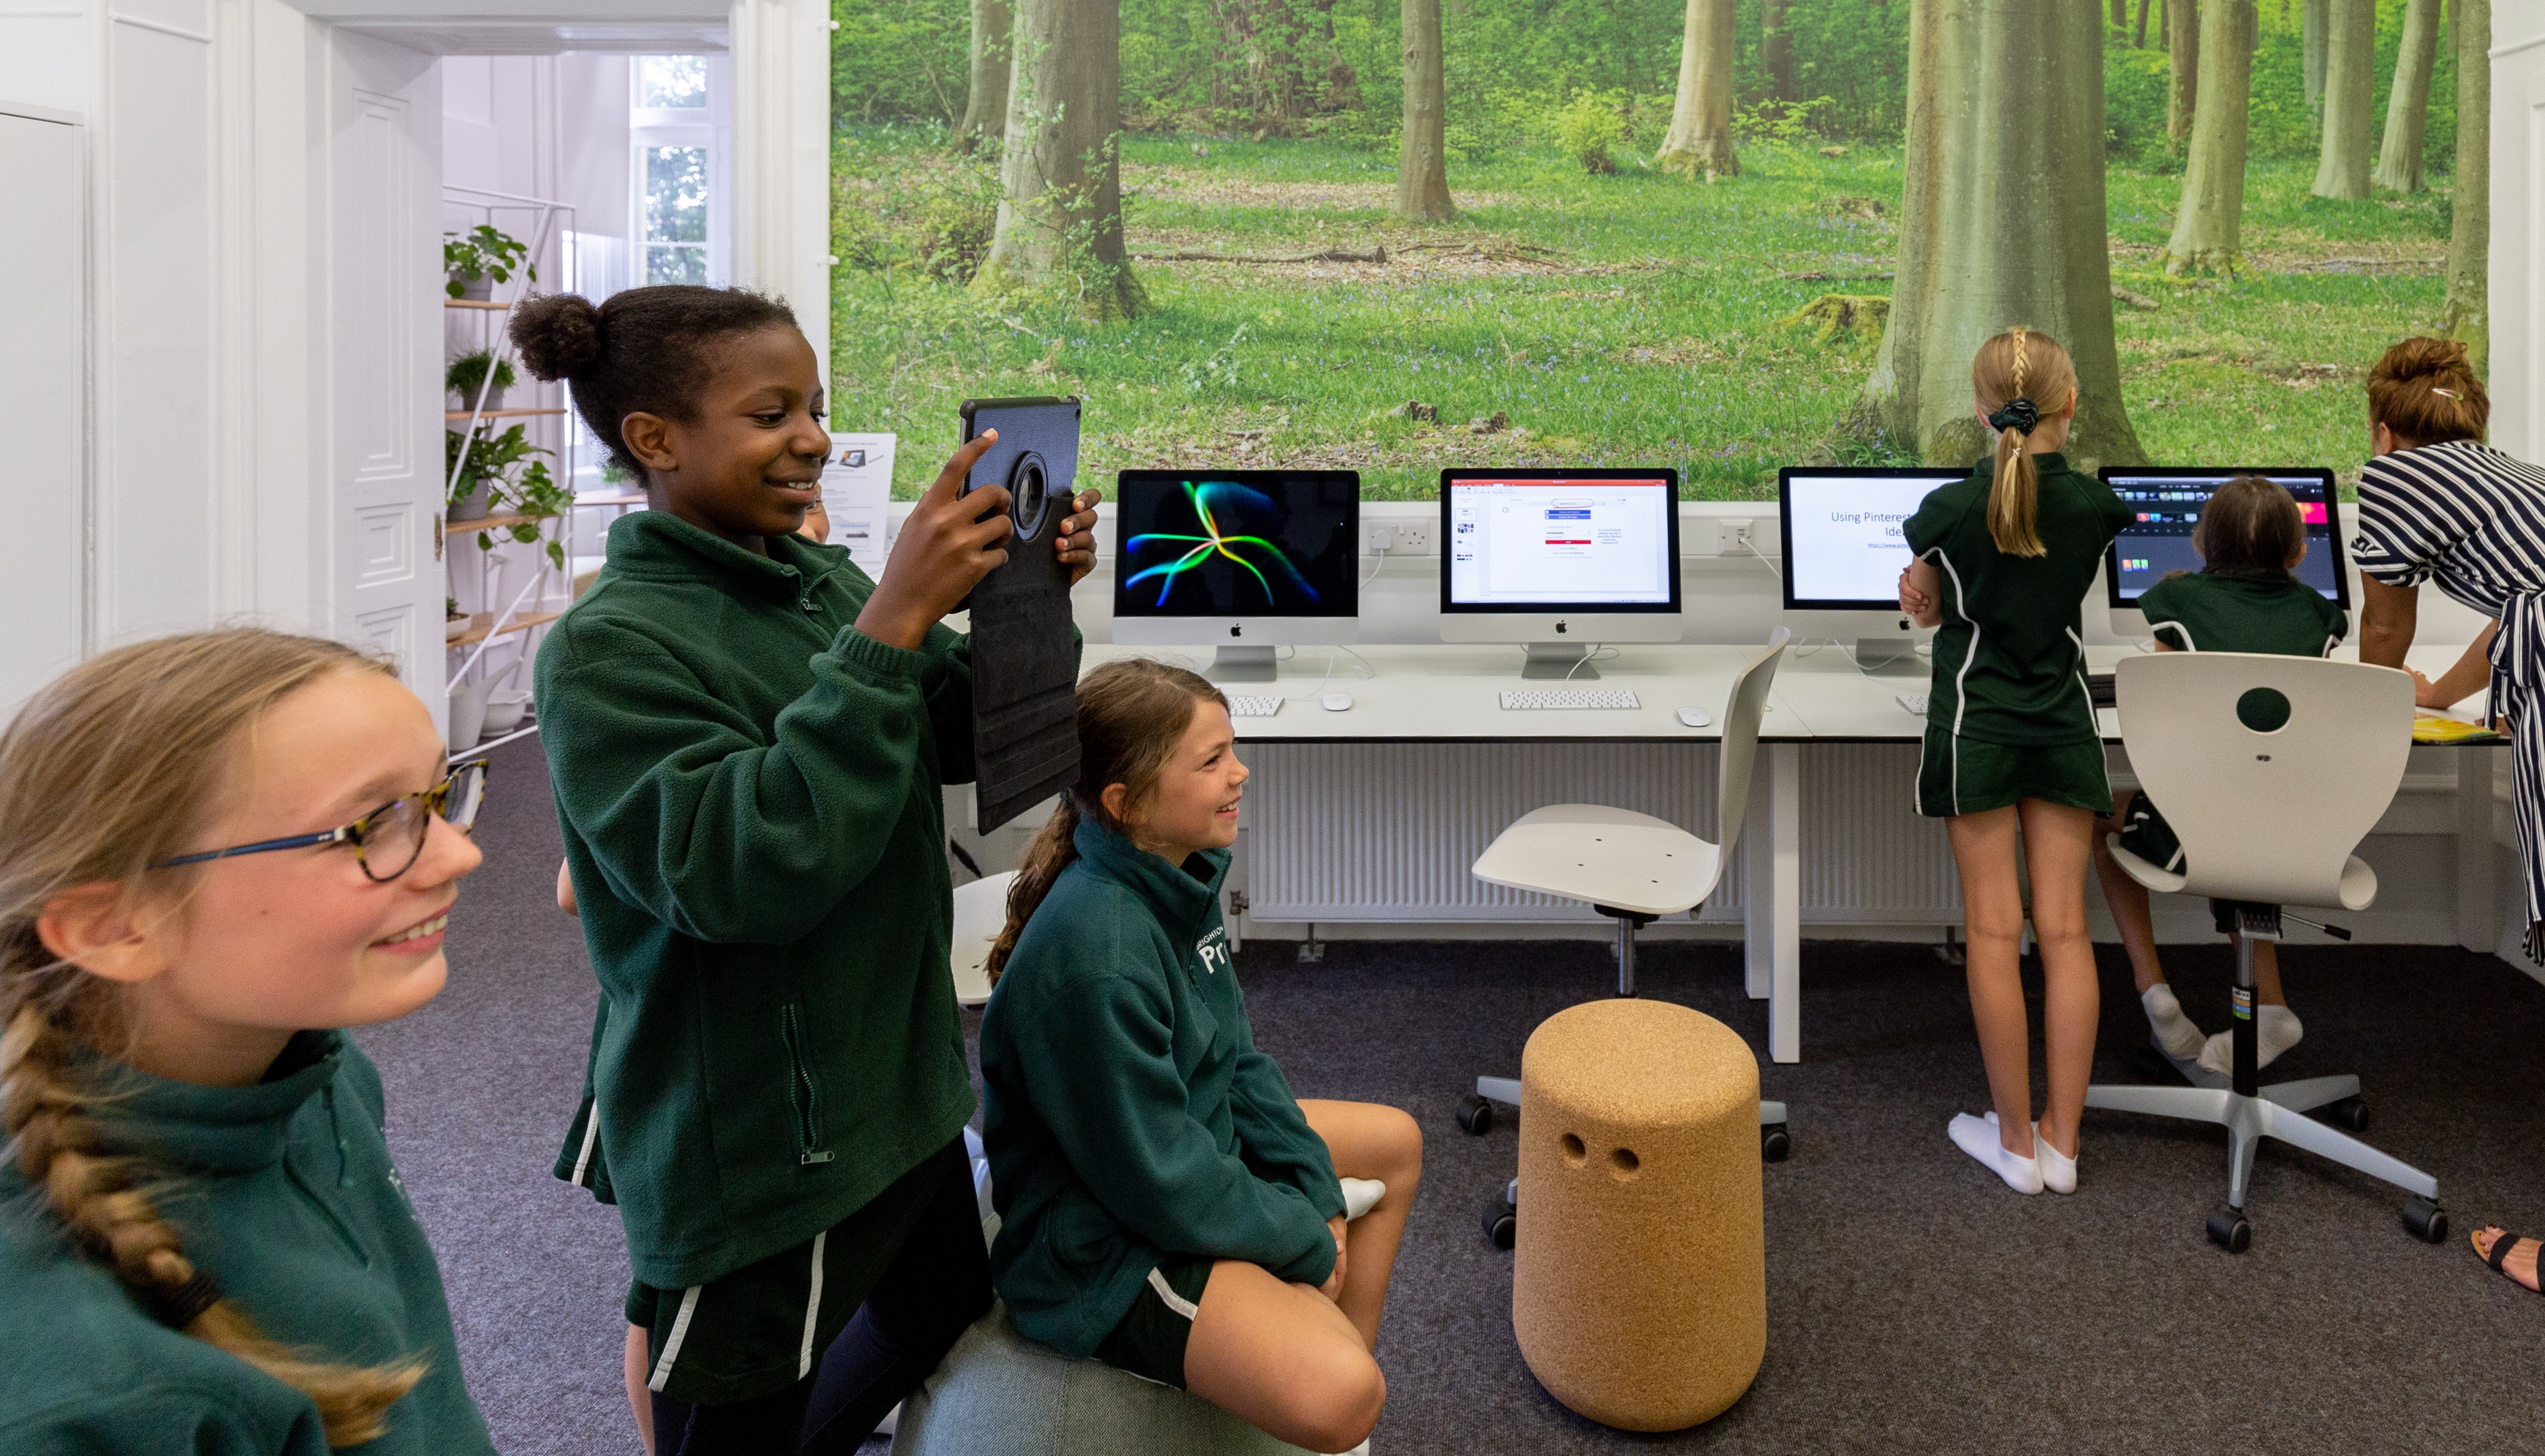 School Innovation: VR Headsets or a Cardboard Box?